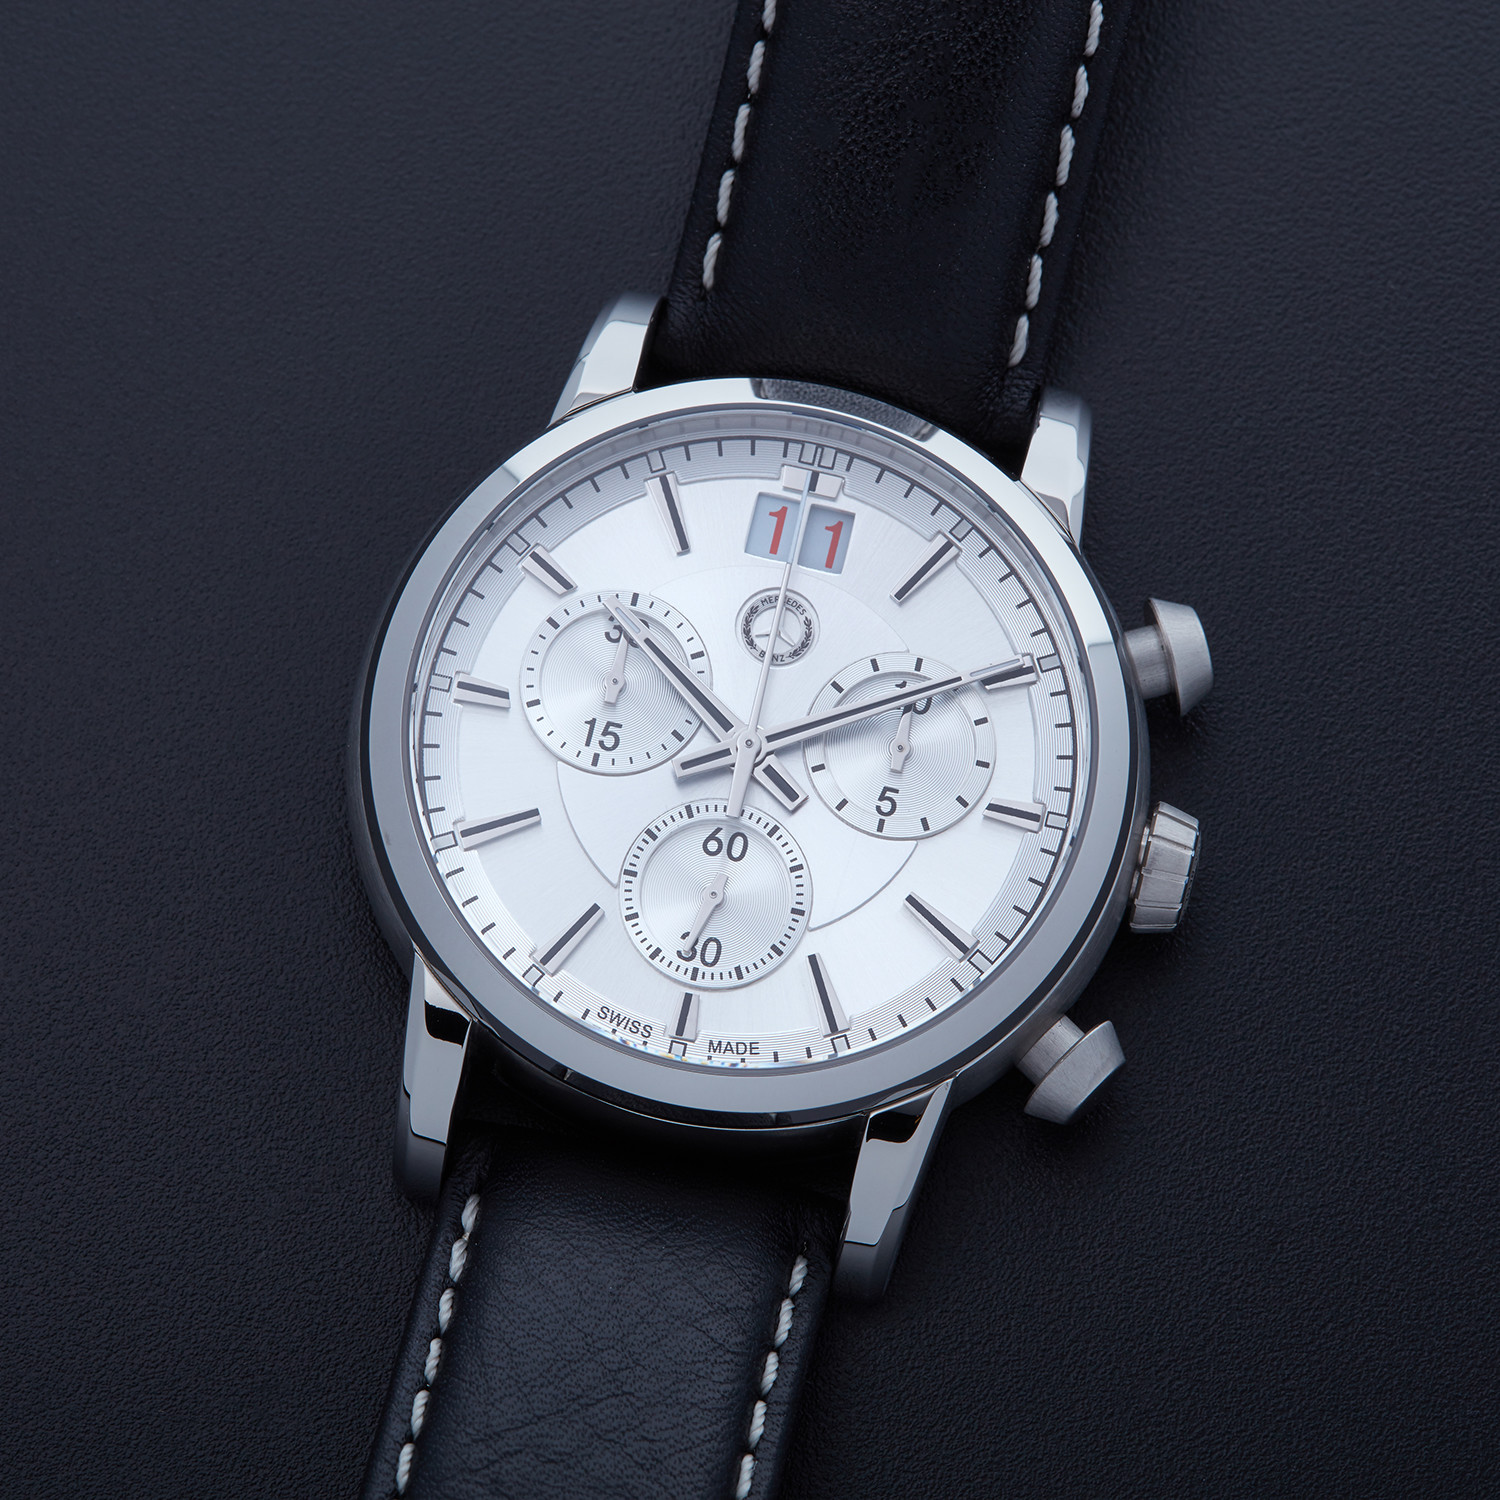 Mercedes Benz Men's Perforated Leather Chronograph Dial ... |Mercedes Benz Chrono Watches